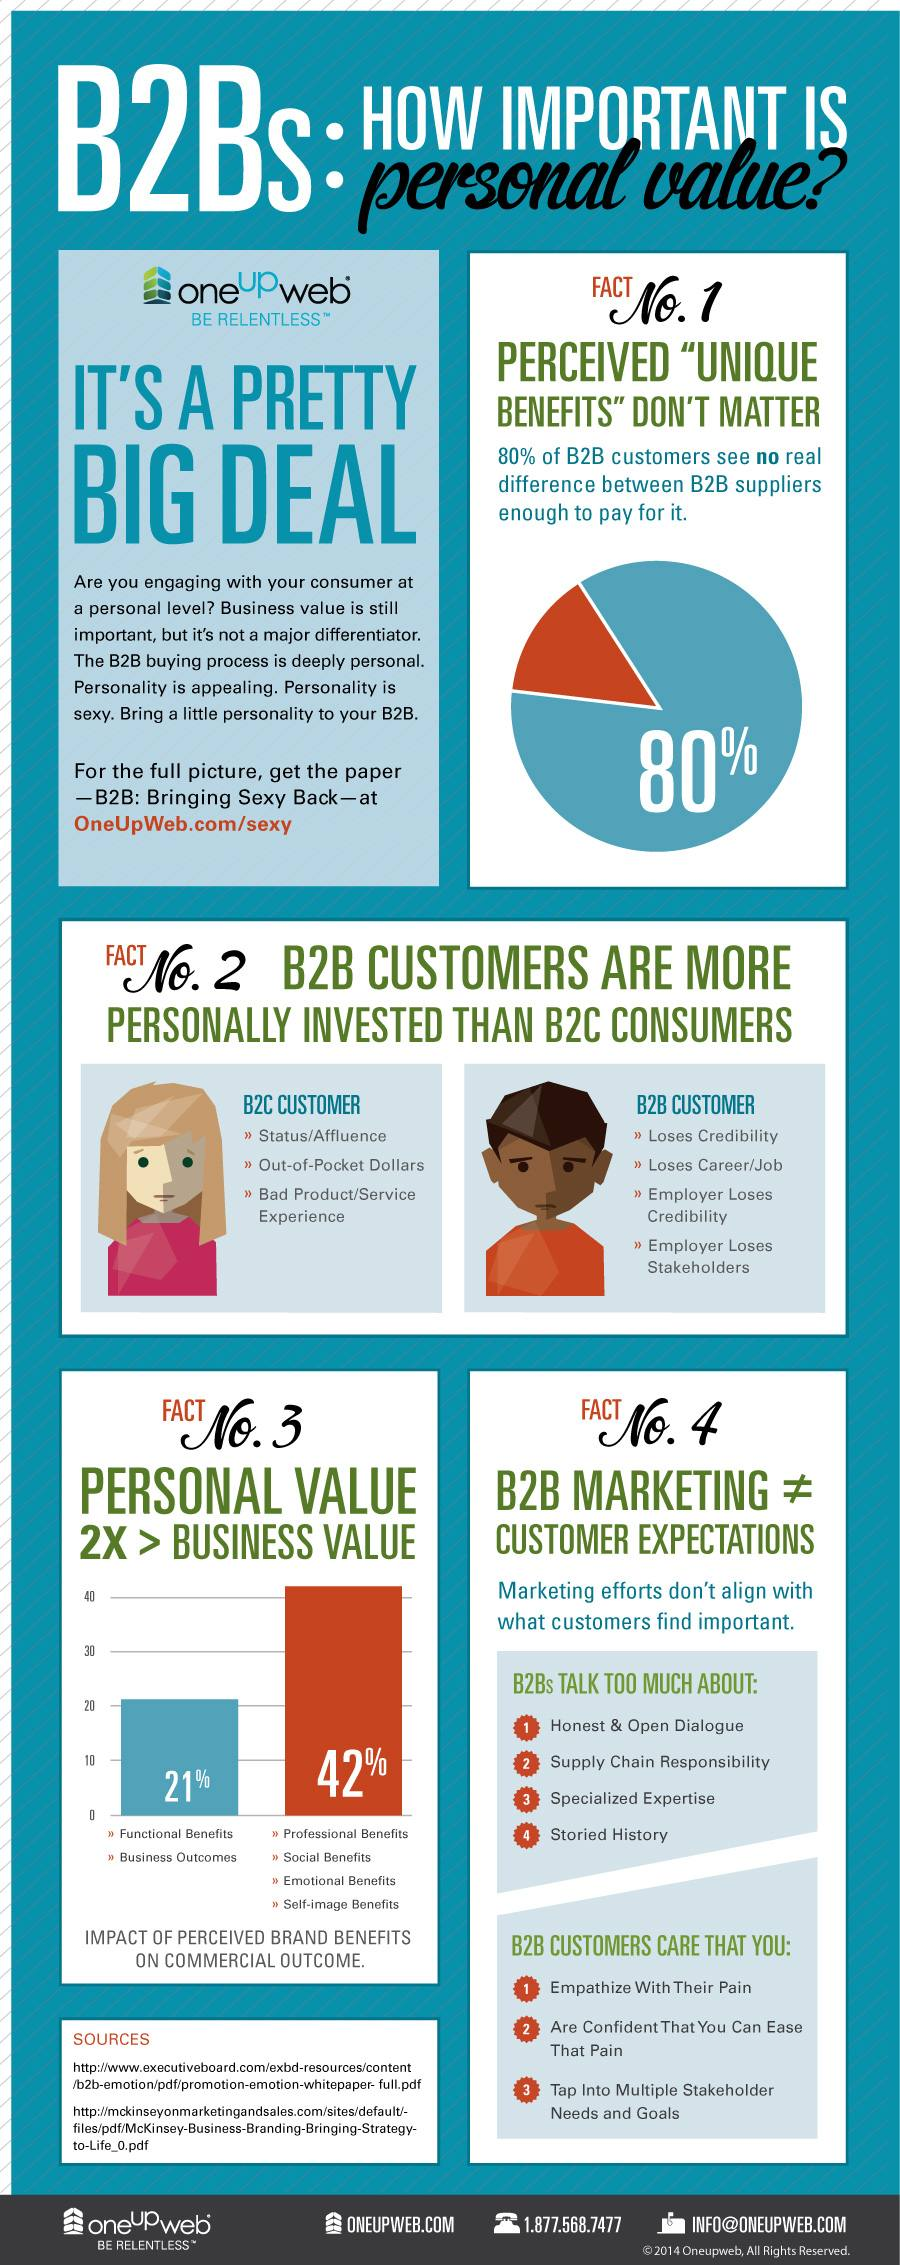 Infographic-B2Bs-How-Important-is-Personal-Value